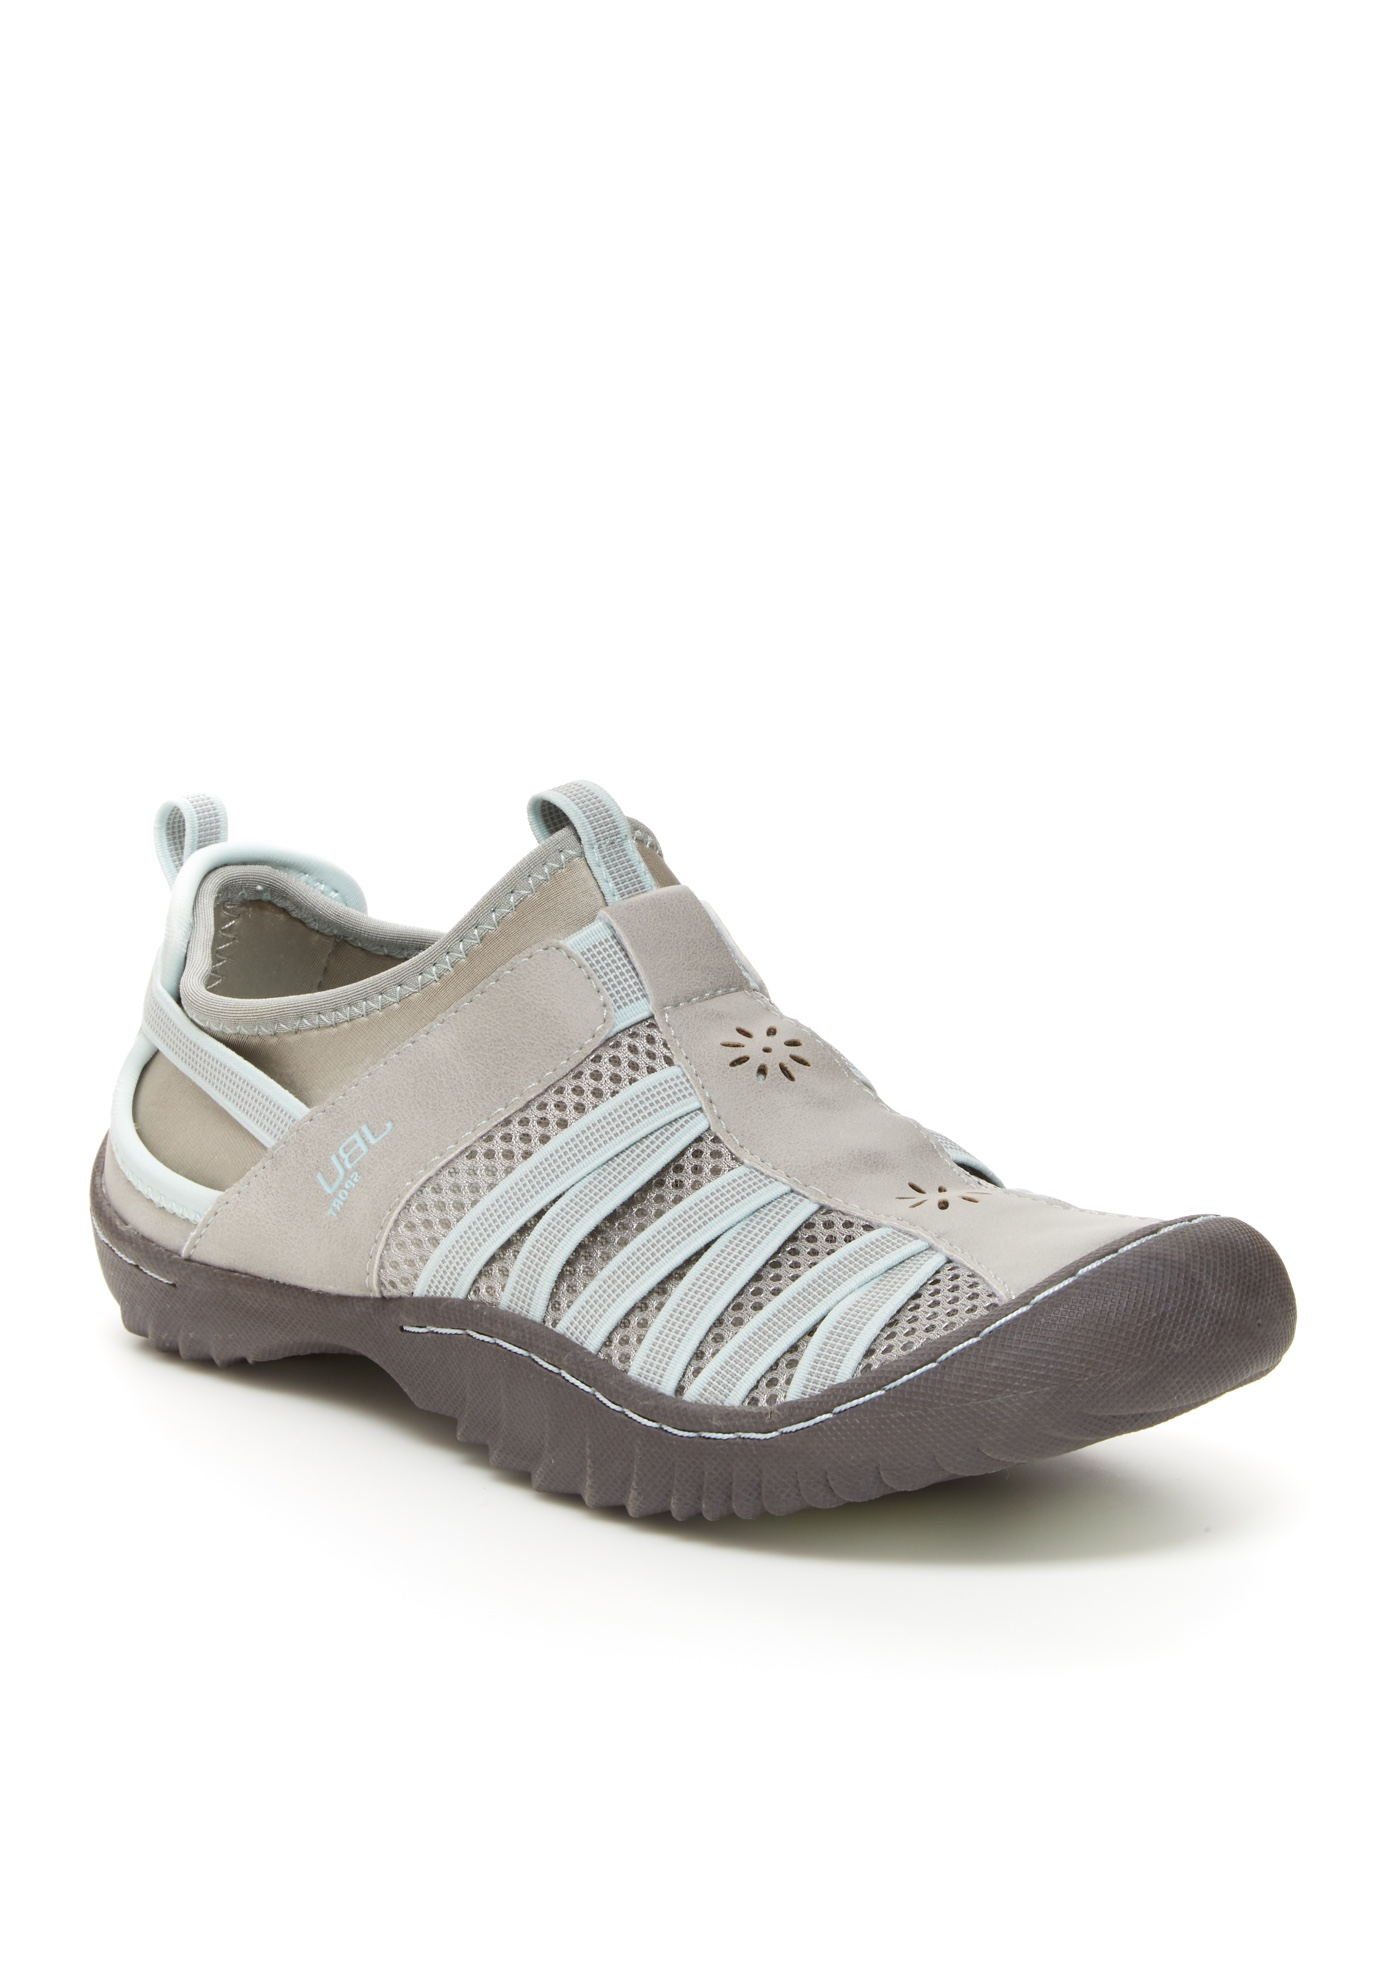 Arabella Sneakers by JBU,